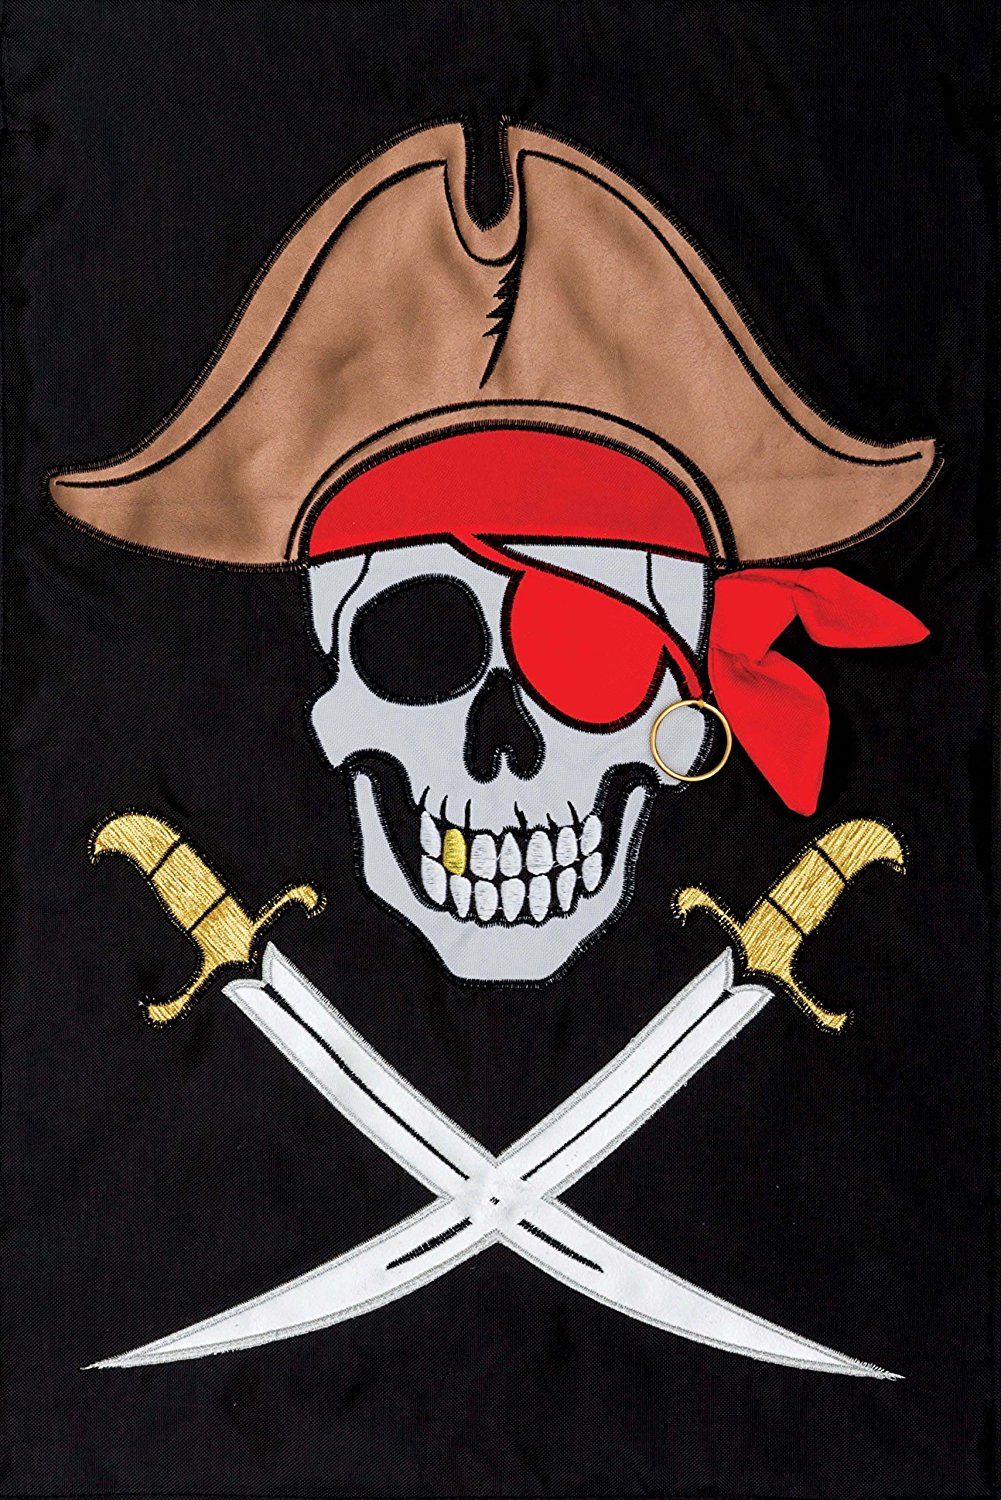 """ PIRATE "" - Garden Size, 12 Inch X 18 Inch, Decorative Double Sided Applique Flag EMBROIDERED, License, Copyrights, Trademark by Custom Decor Inc."